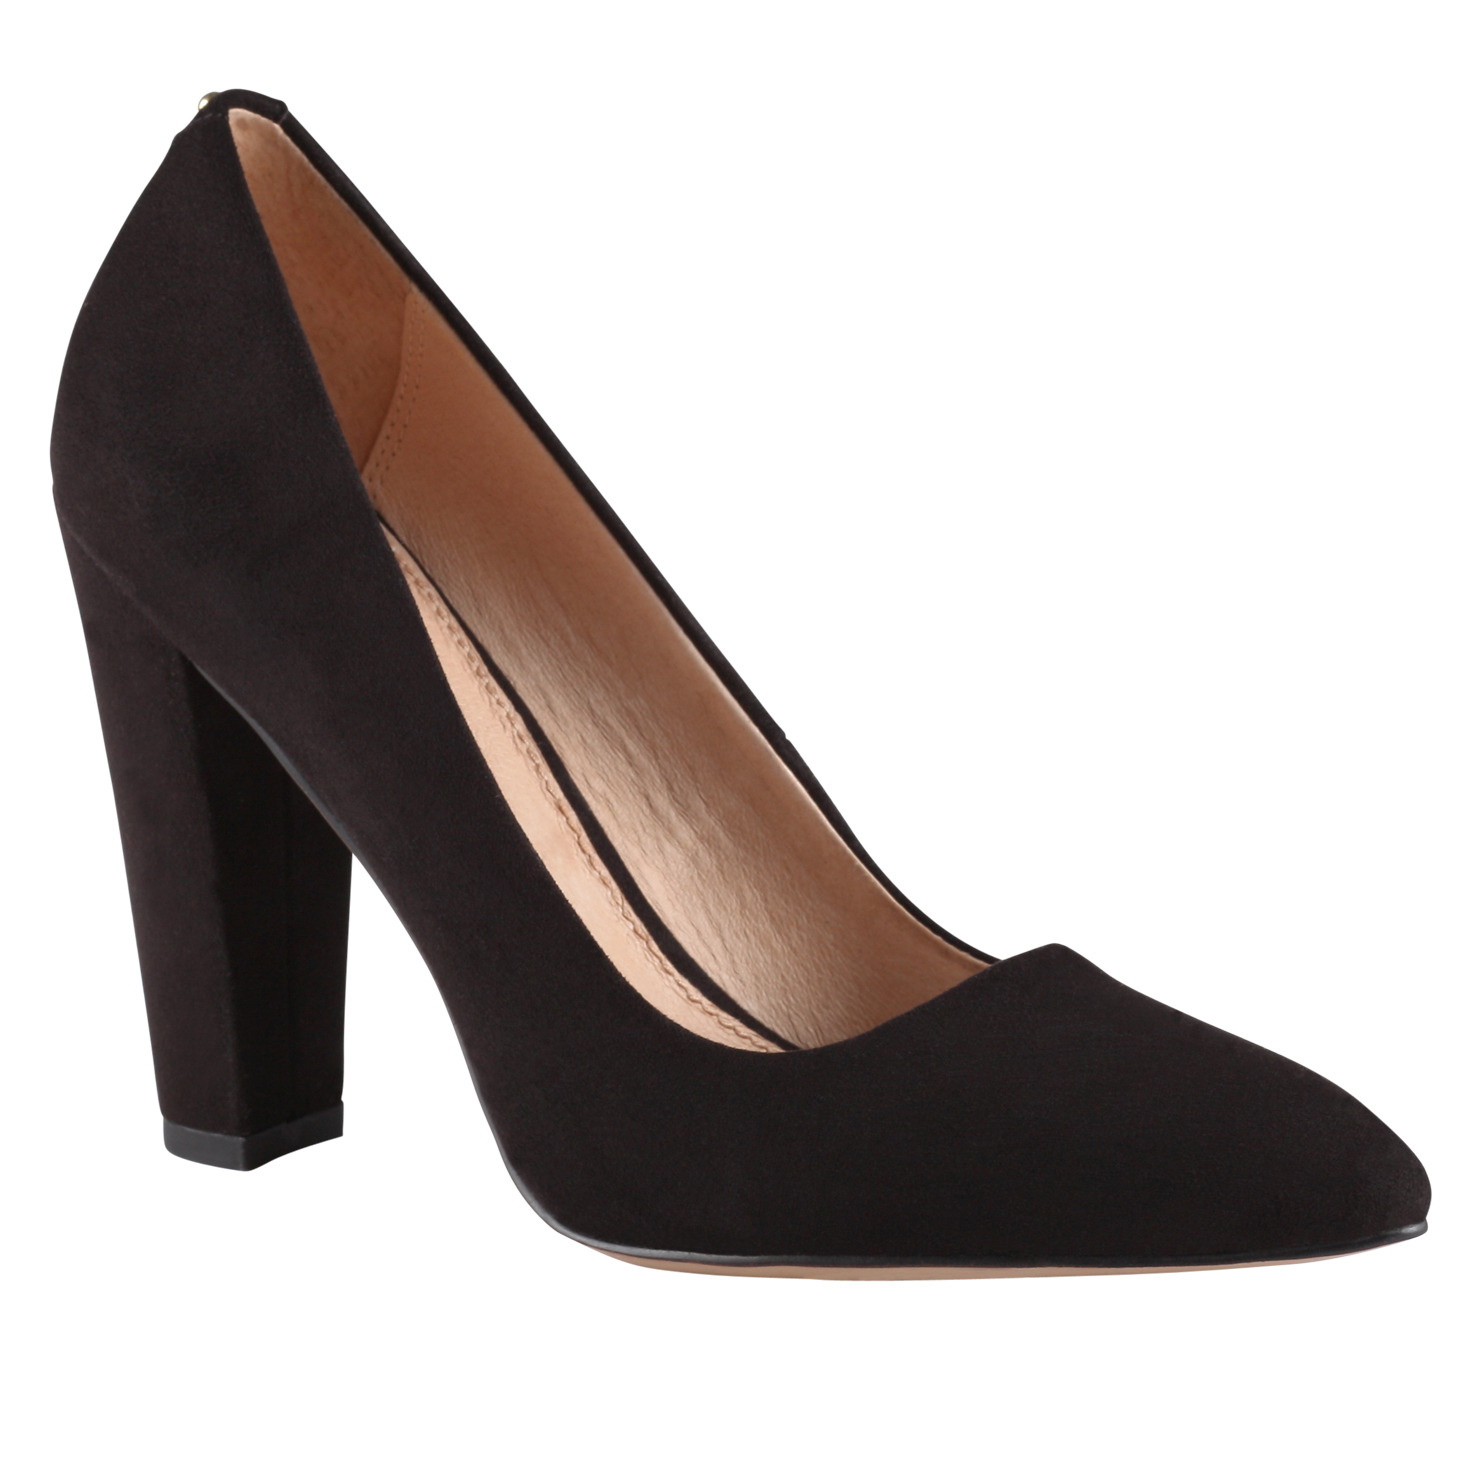 Aldo Clearance Women Shoes